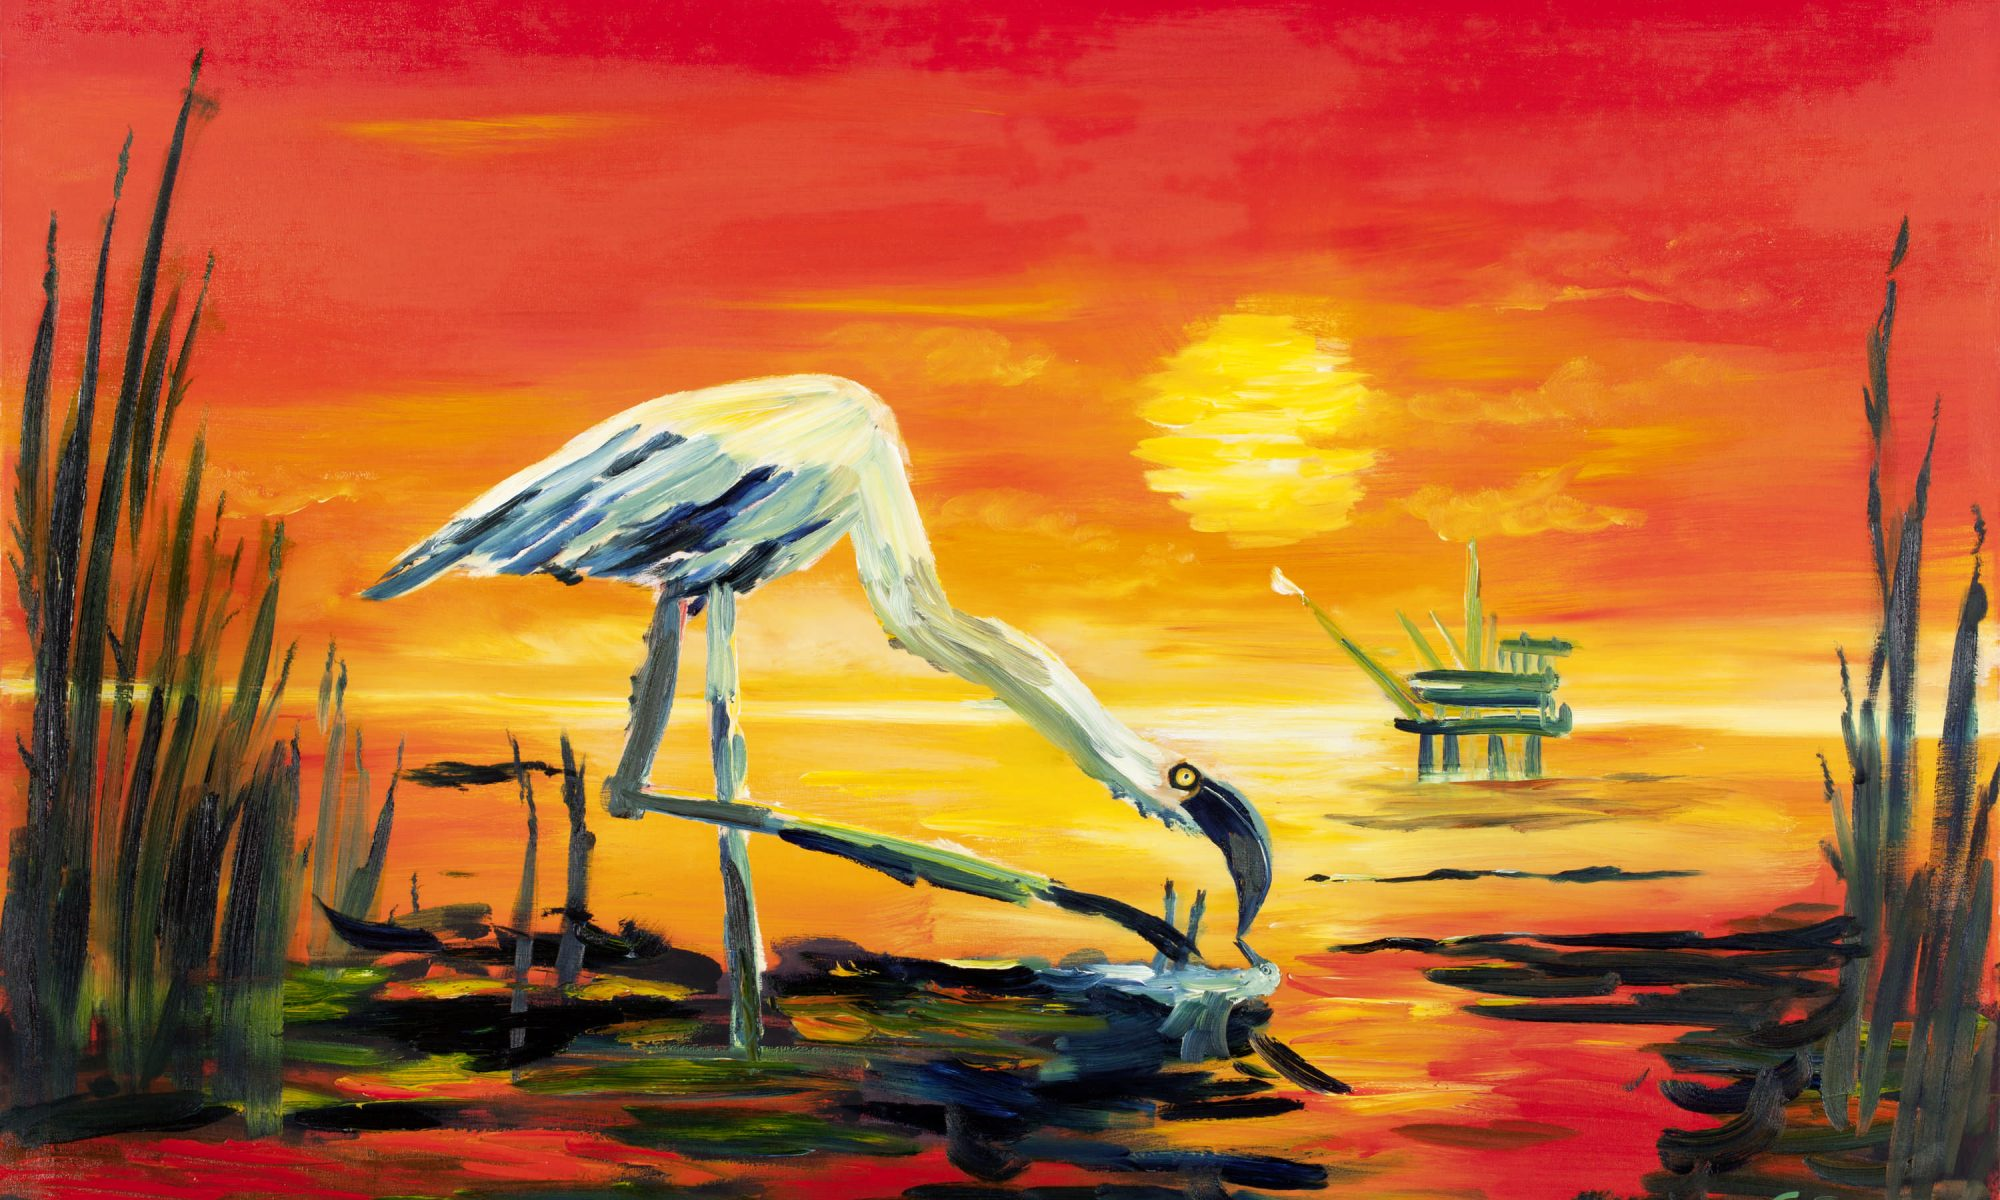 flamingo mother and cub in the oil spill painting